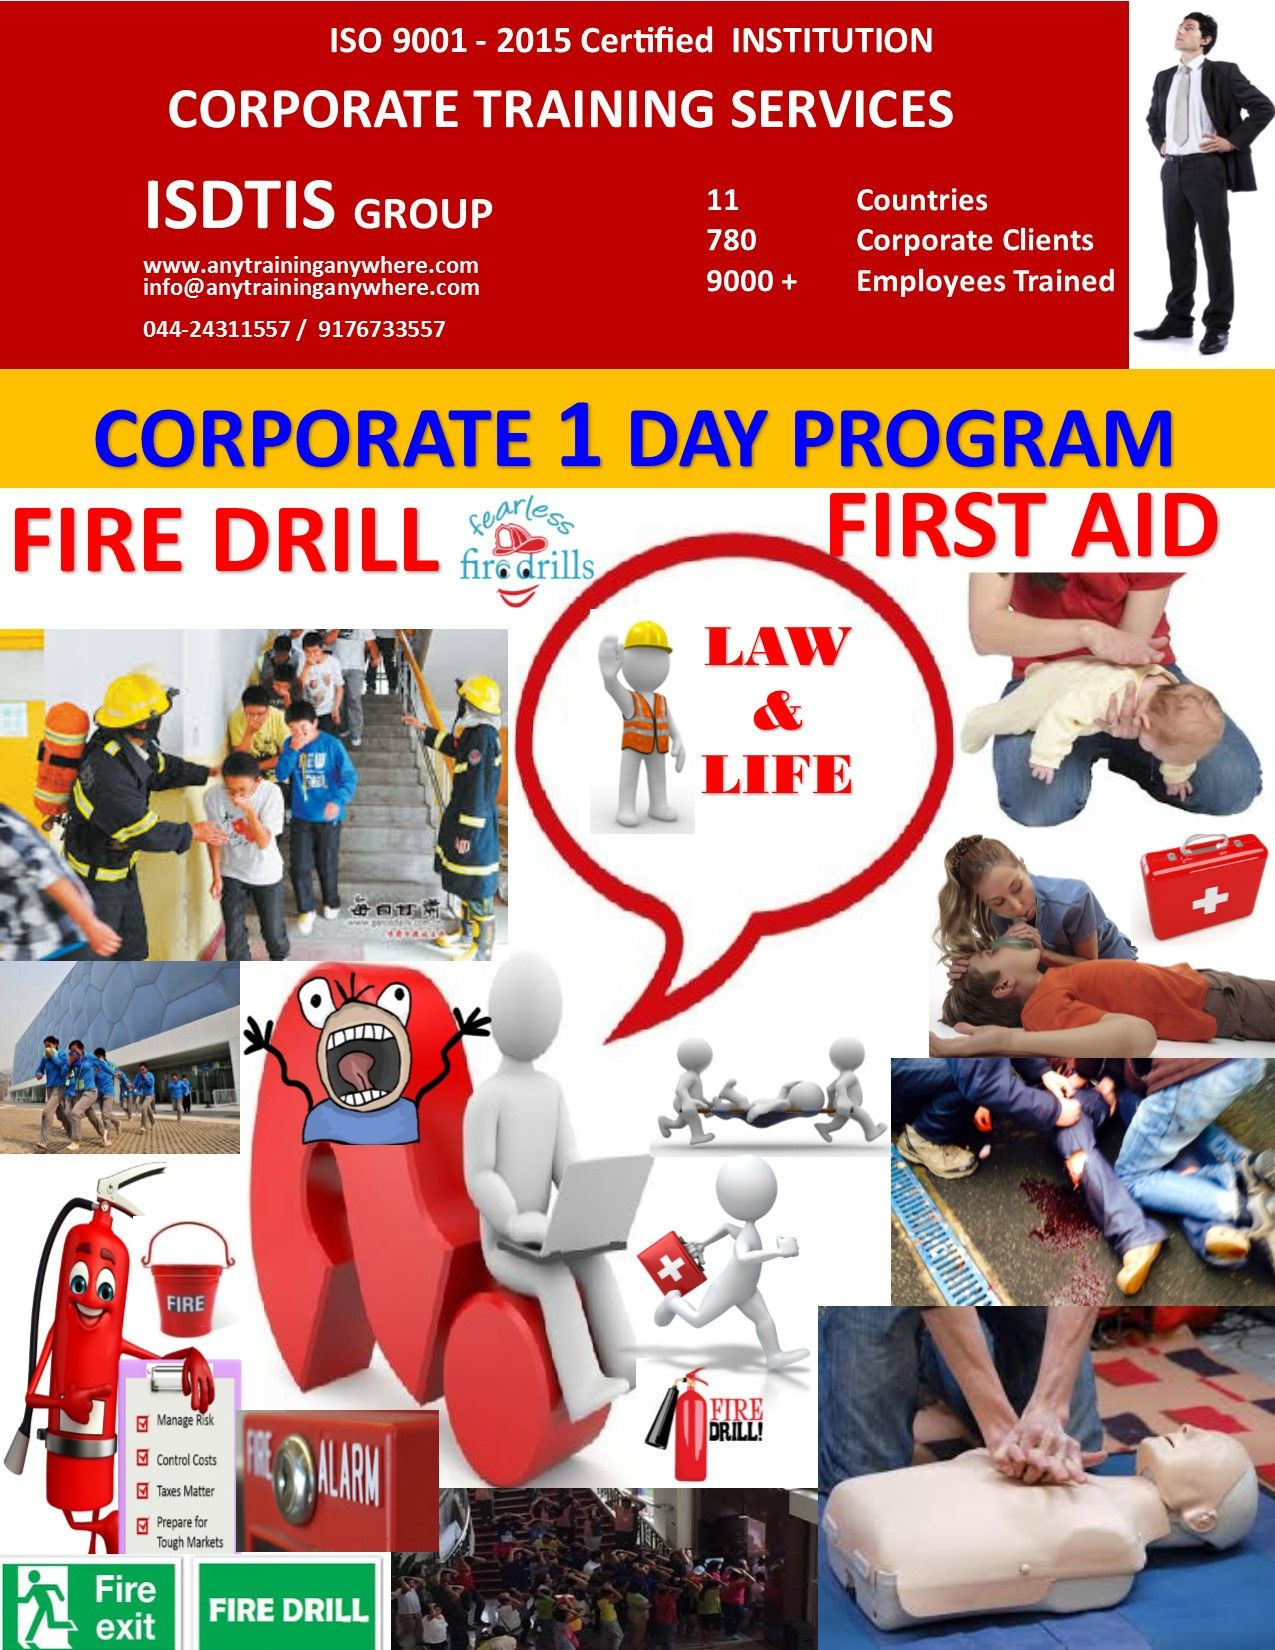 FIRST AID TRAINING IN CHENNAI, FIRE DRILL TRAINING IN